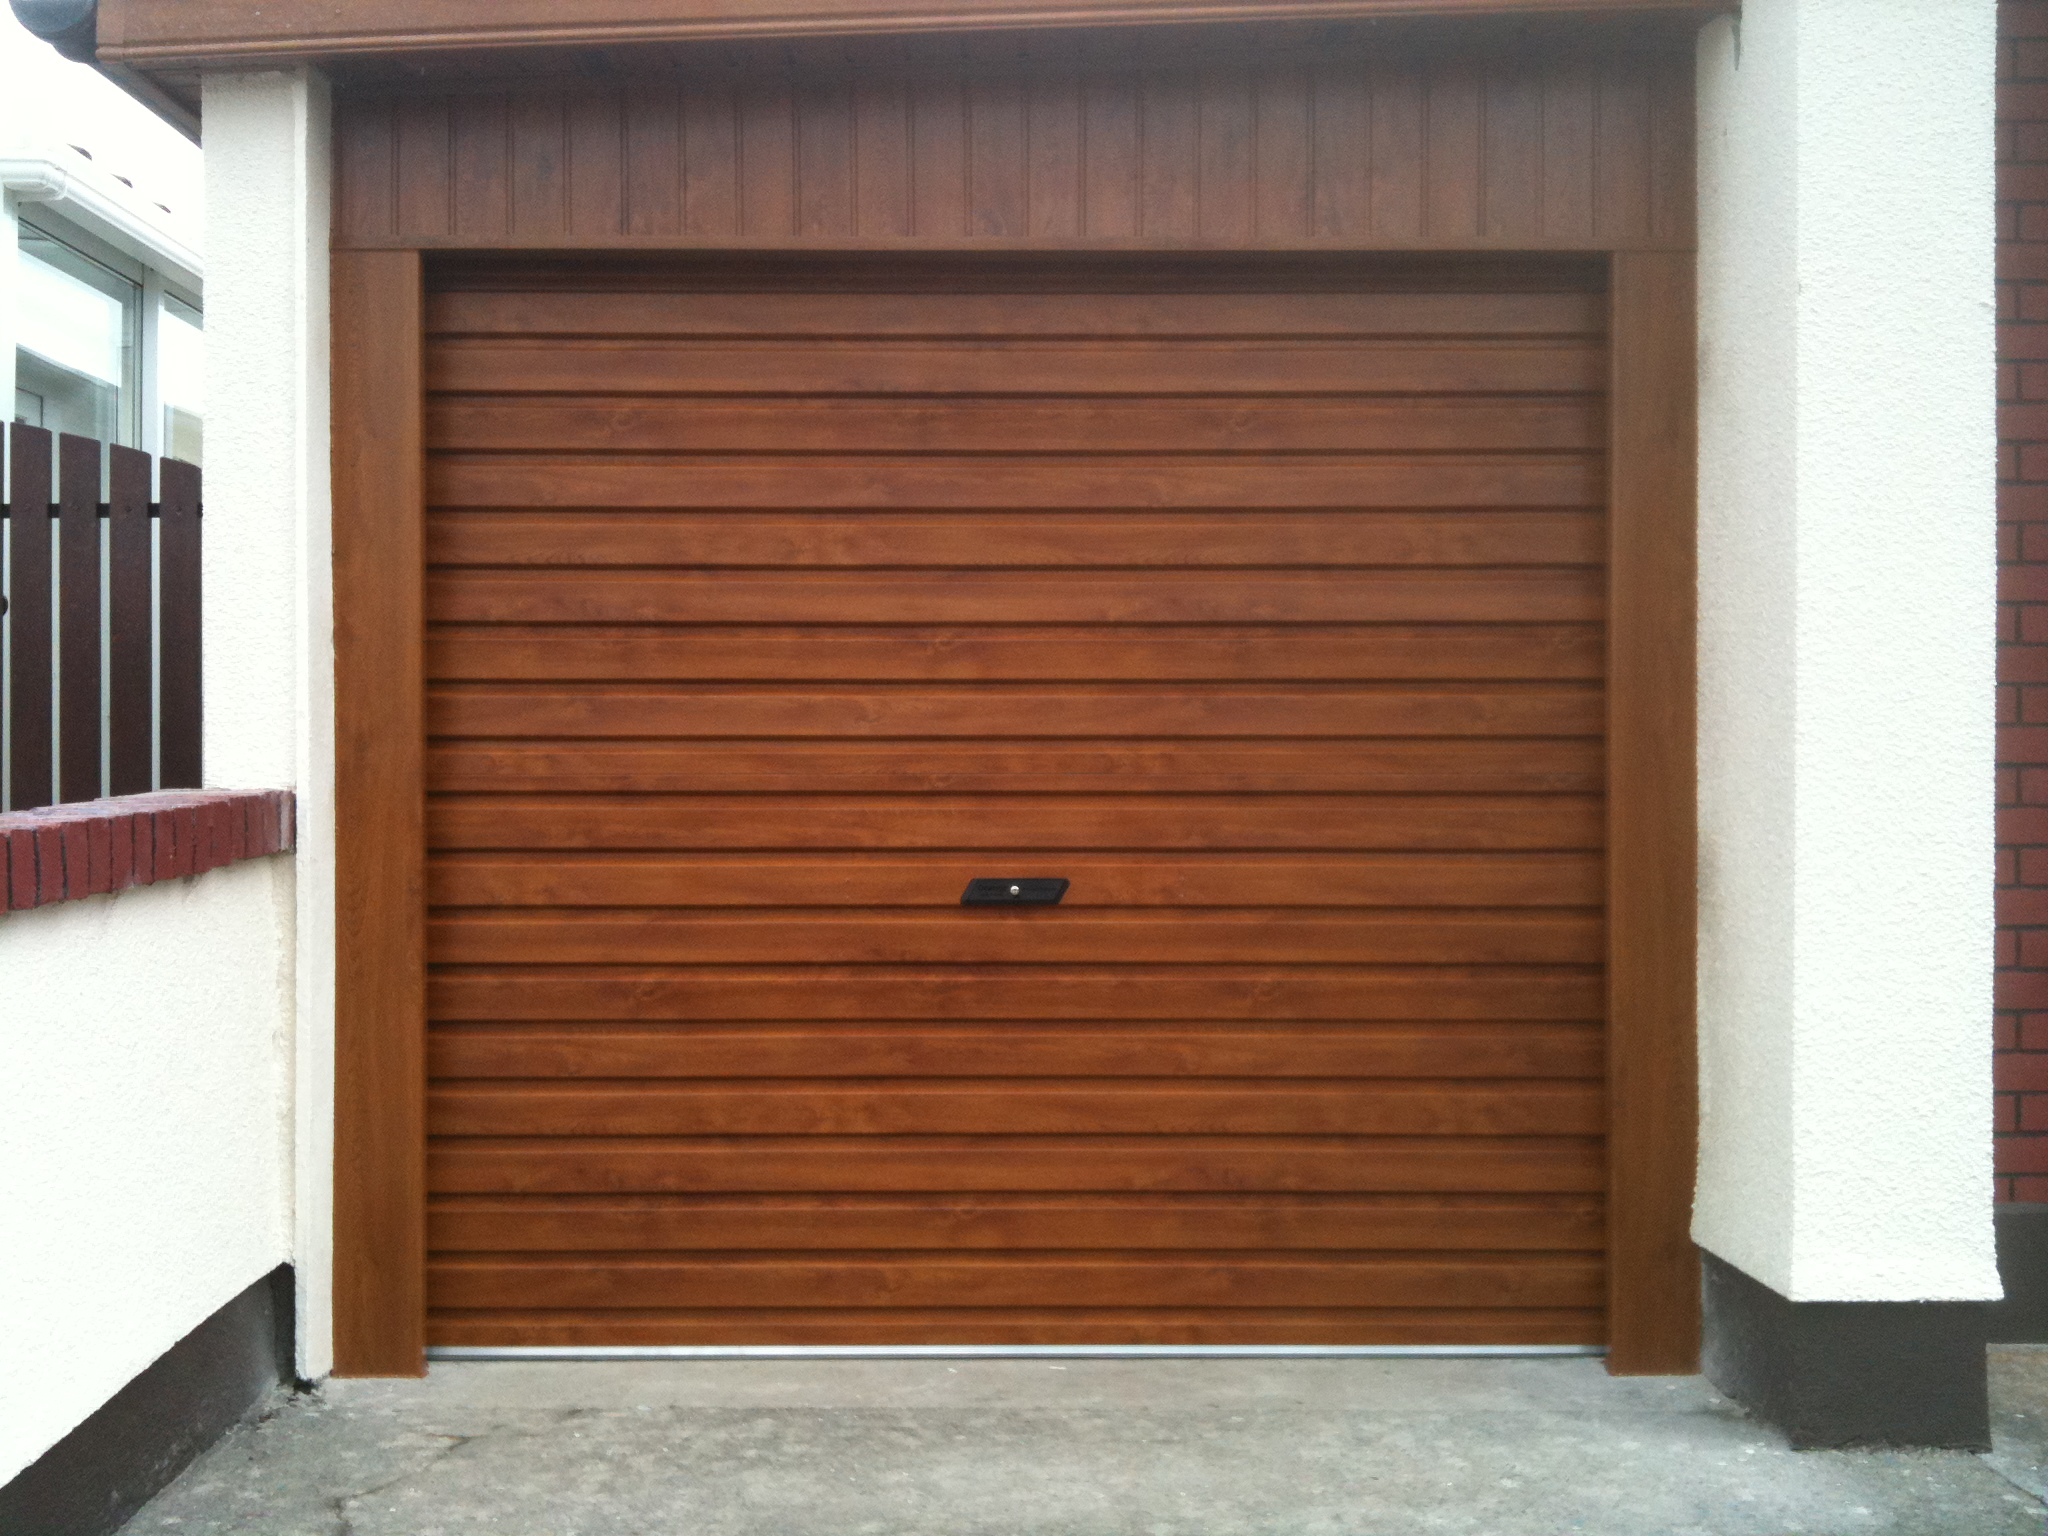 gds carriage product drive door archives opener parts screw stuff overhead category genie trolly garage carriagetrolly doors